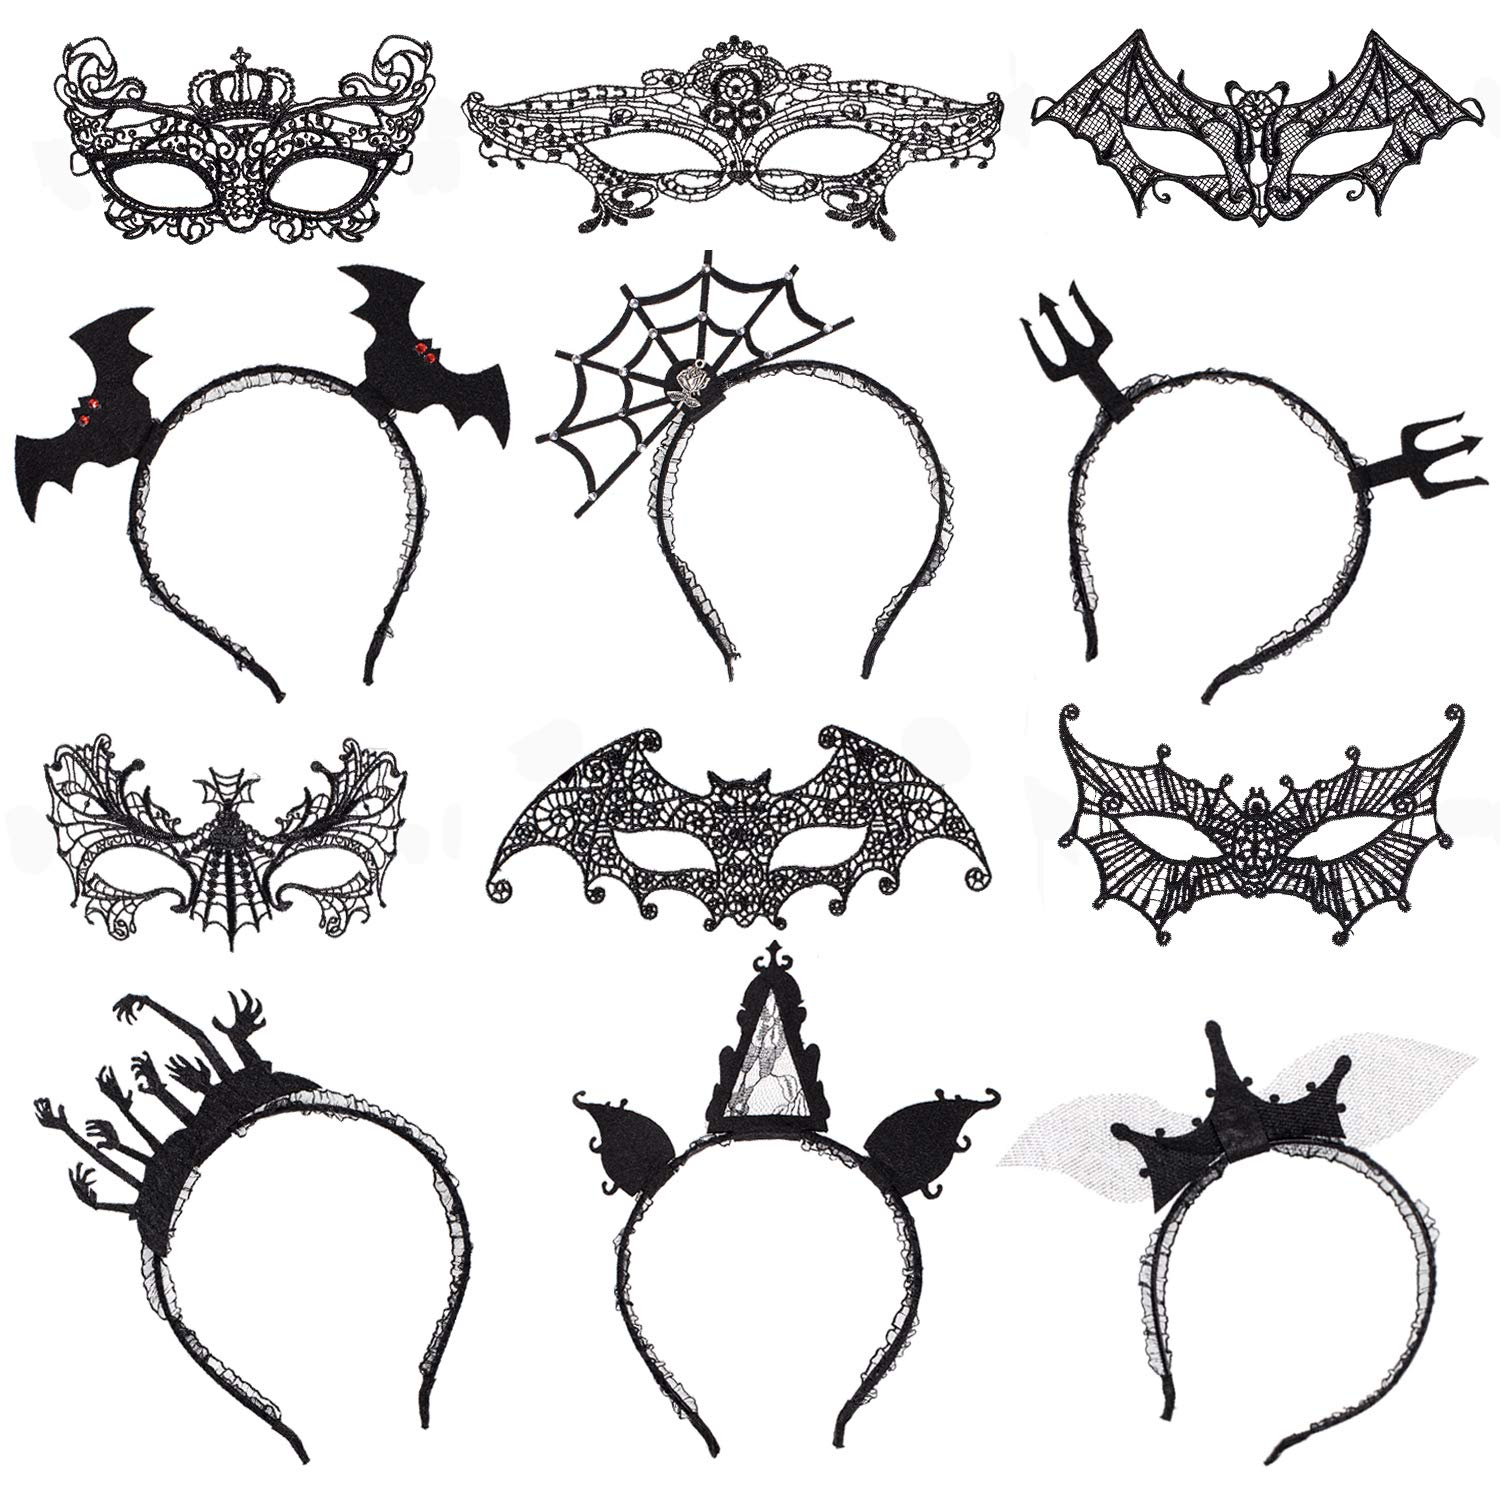 Whaline 12 Pcs Halloween Headbands and Eye Masks, Black Hair Hoops and Lace Masquerade Masks for Halloween Party Supplies Spider Web Devil Bat Wings Ghost Hands Dress up Hair Accessories